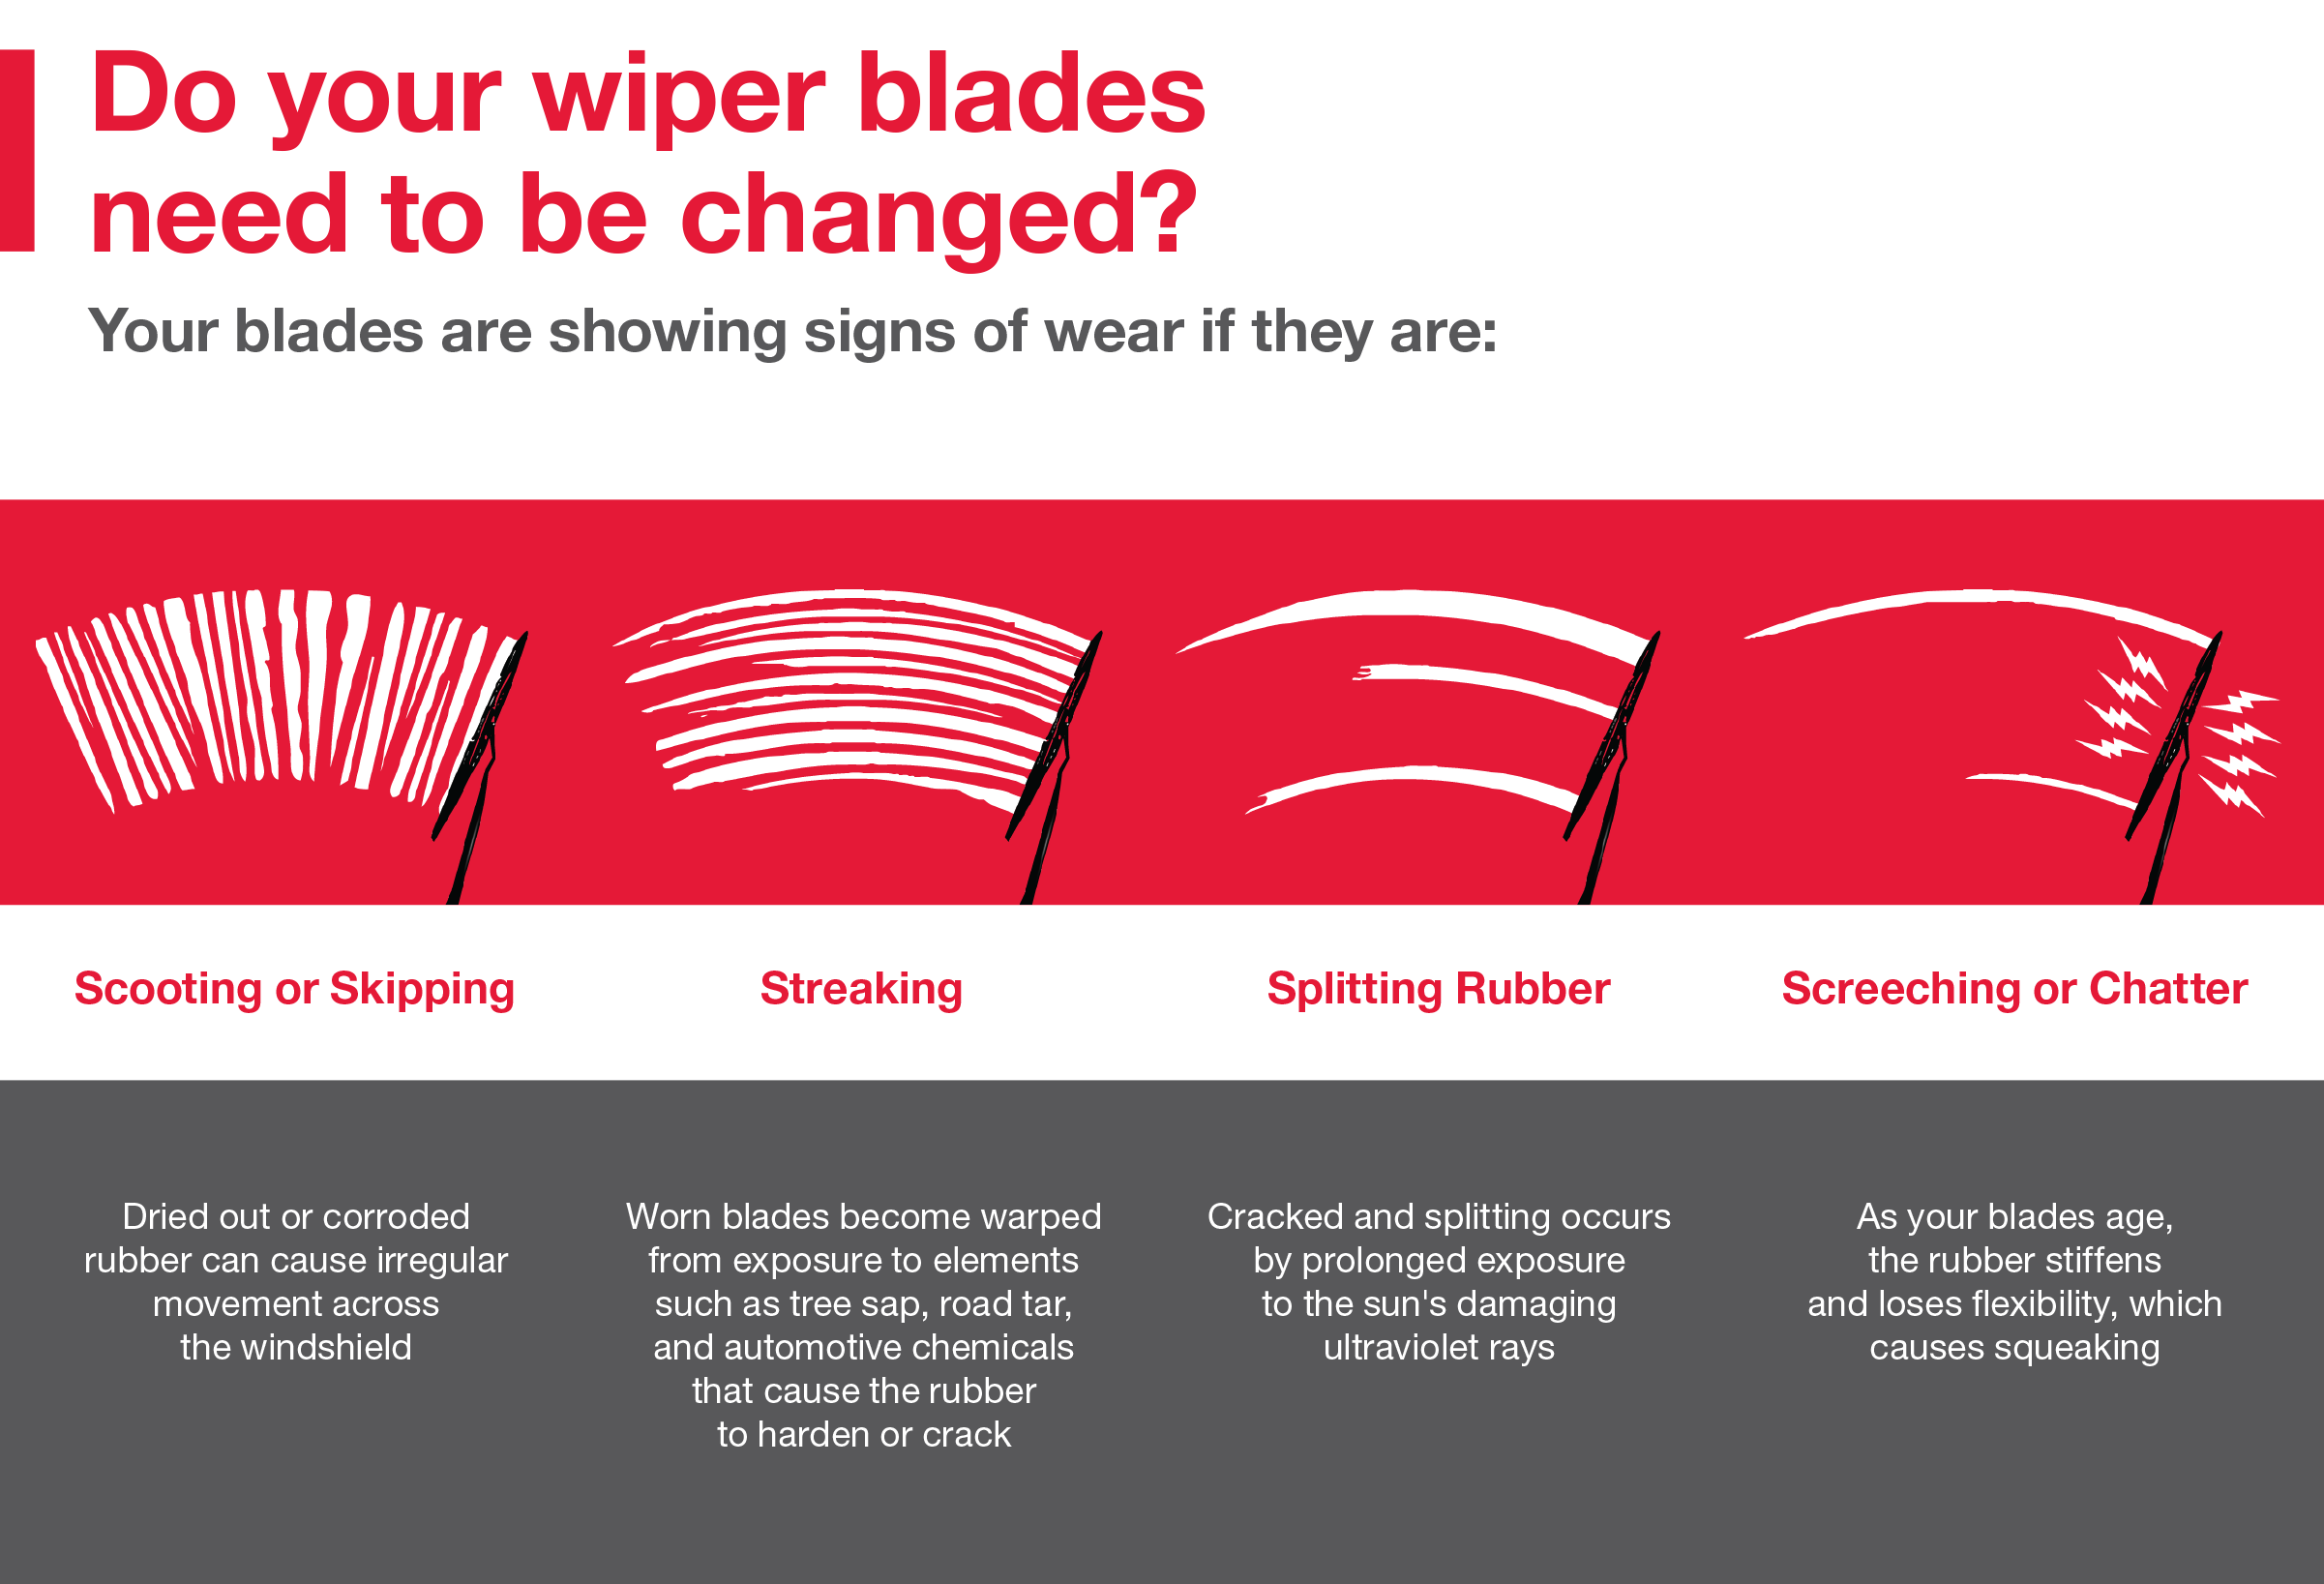 Do your wiper blades need to be changed? Call your local dealer for more info: 708-435-2204